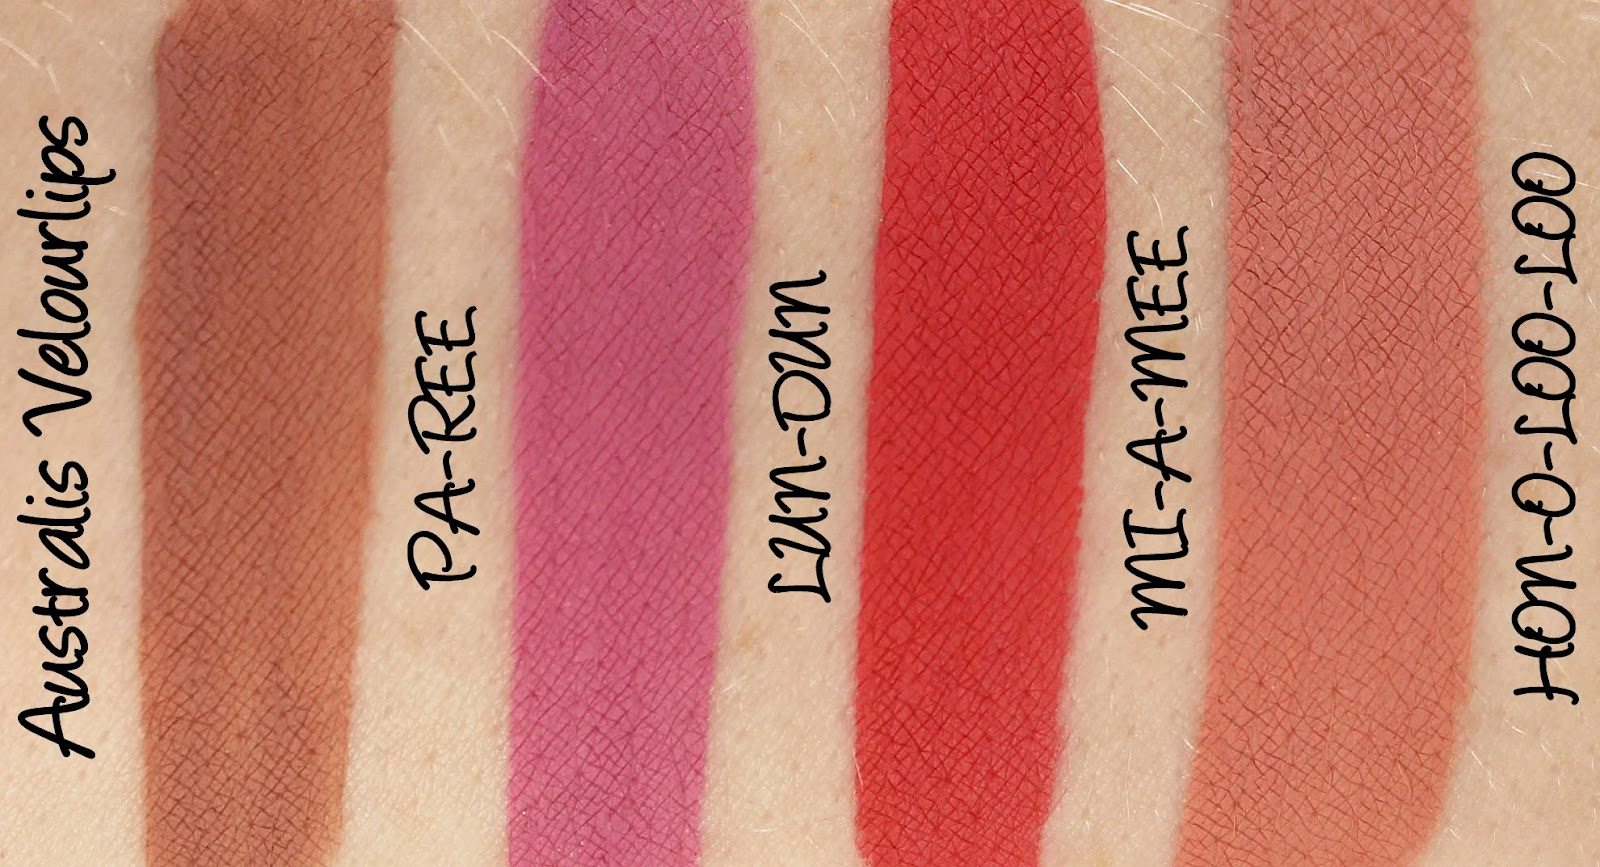 Australis Velourlips Matte Lip Cream - PAR-EE, LUN-DUN, MI-A-MEE and HON-O-LOO-LOO Swatches & Review